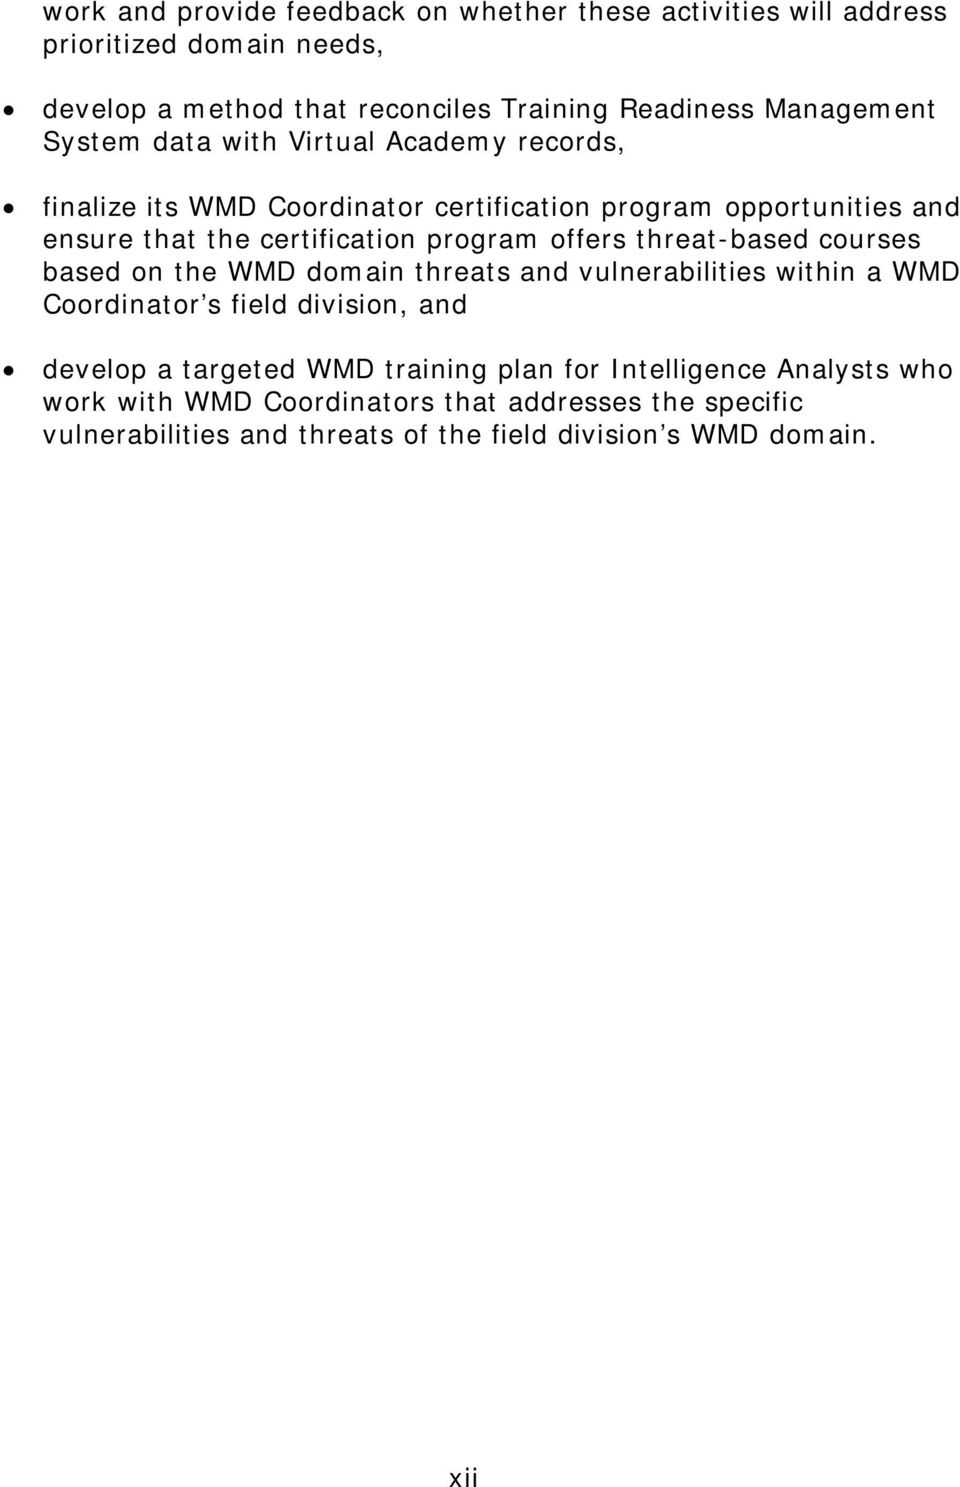 threat-based courses based on the WMD domain threats and vulnerabilities within a WMD Coordinator s field division, and develop a targeted WMD training